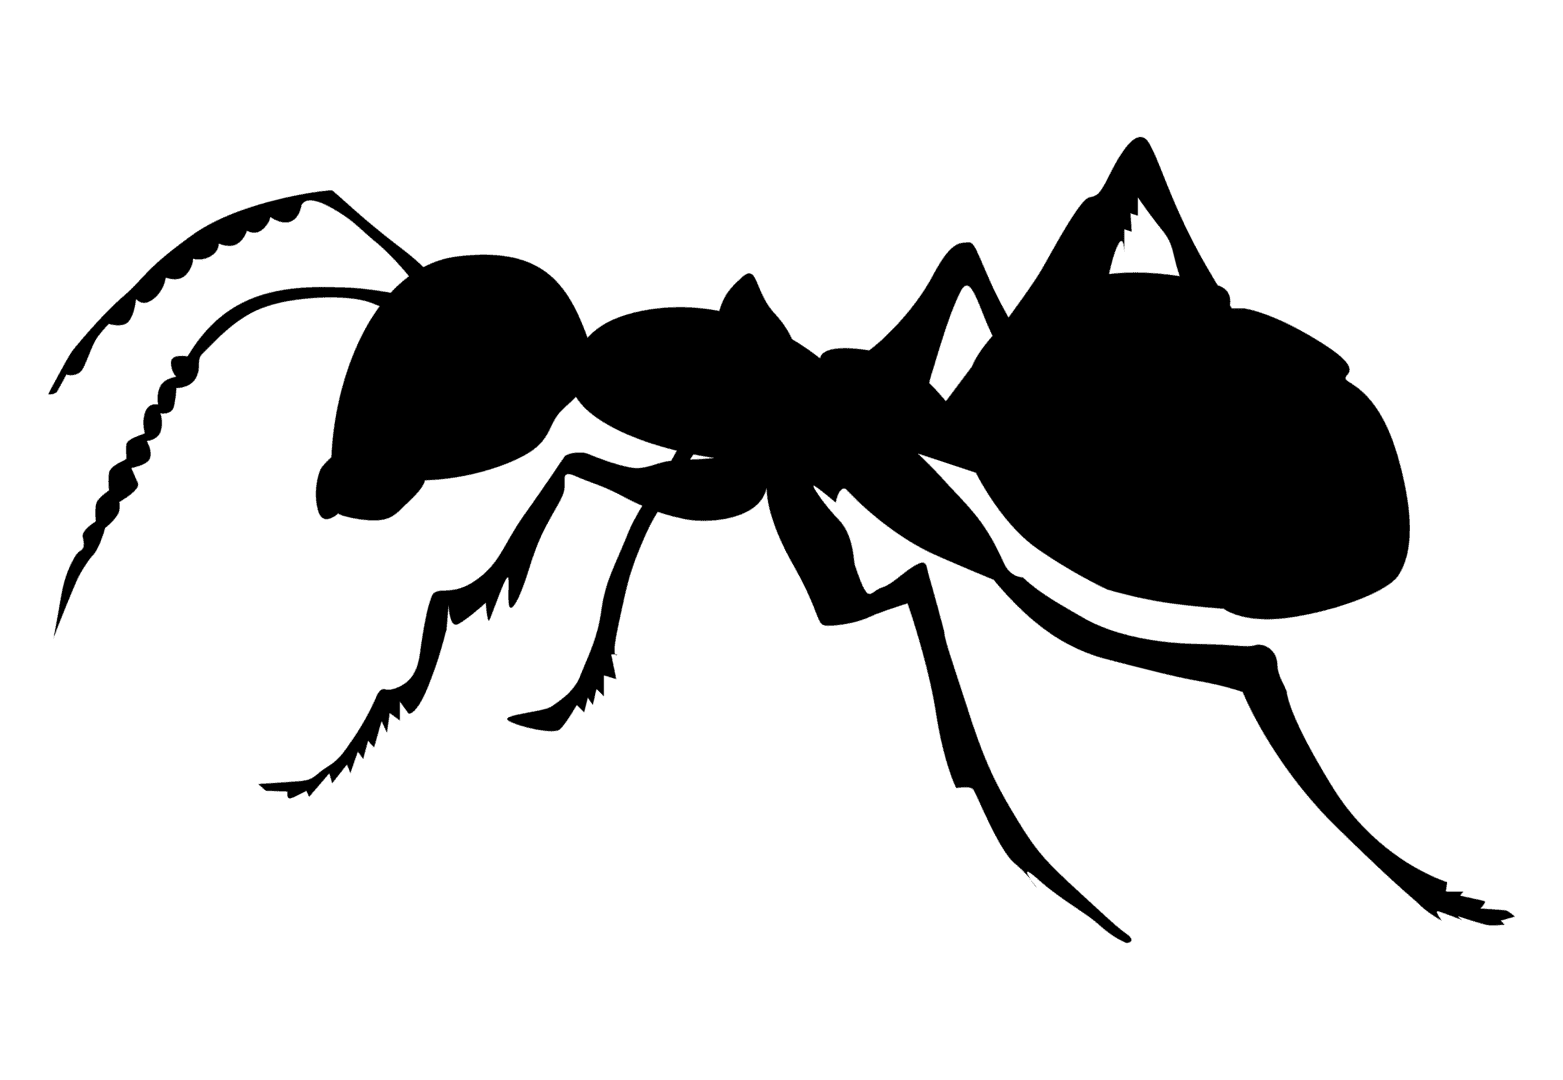 ant, first choice pest management extermination massillon canton and stark county ohio #28870